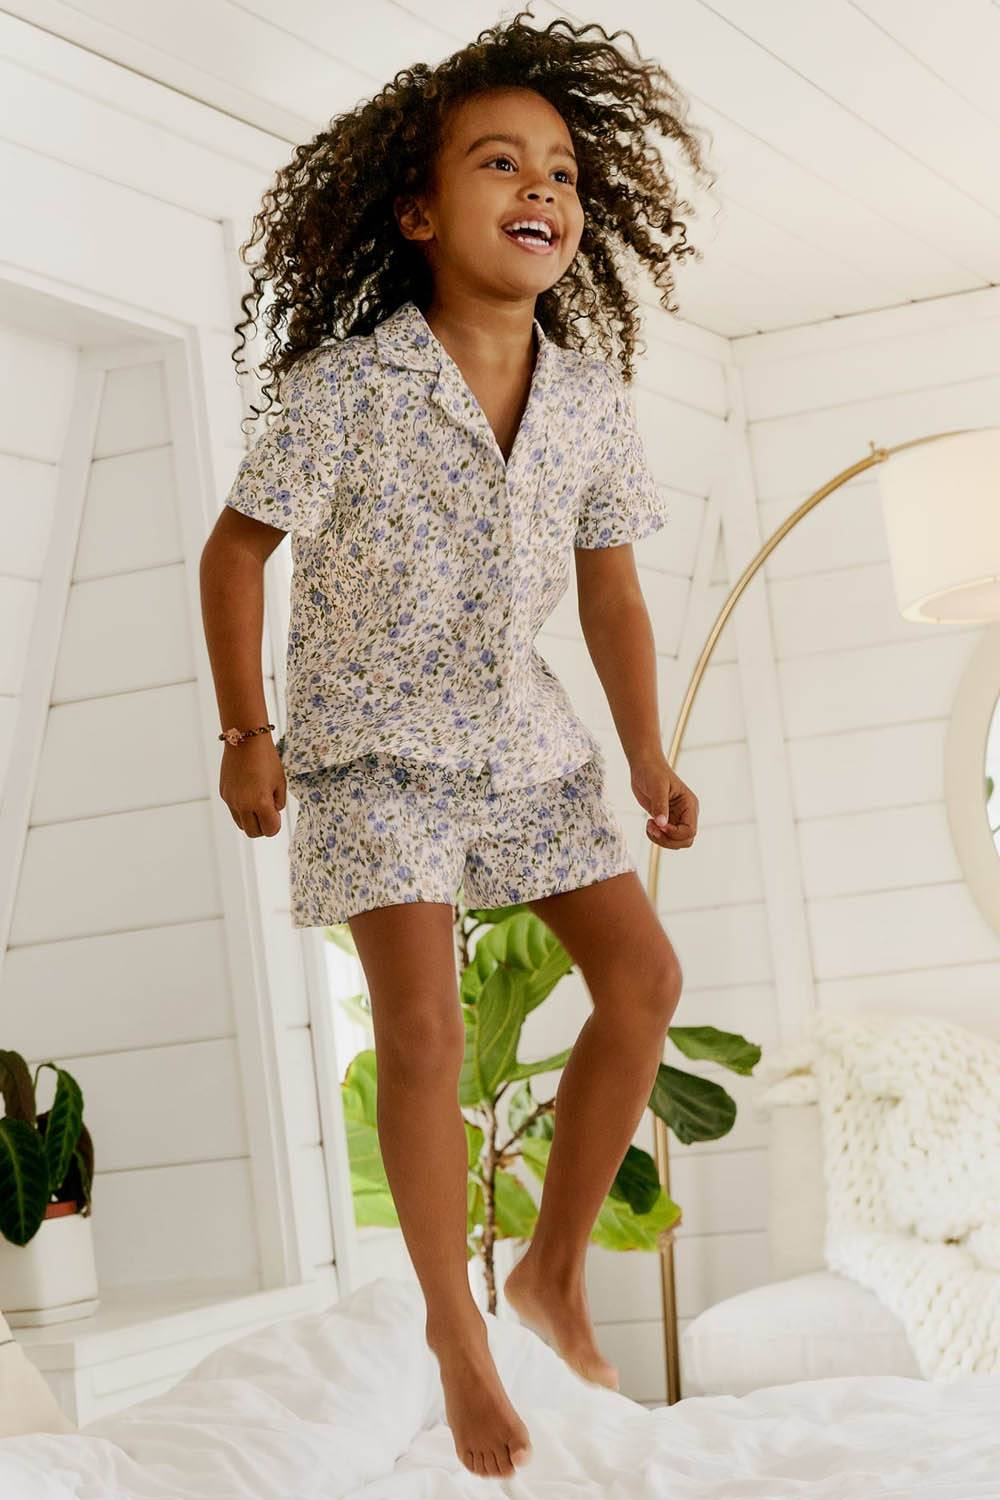 reformation kids clothes usa made